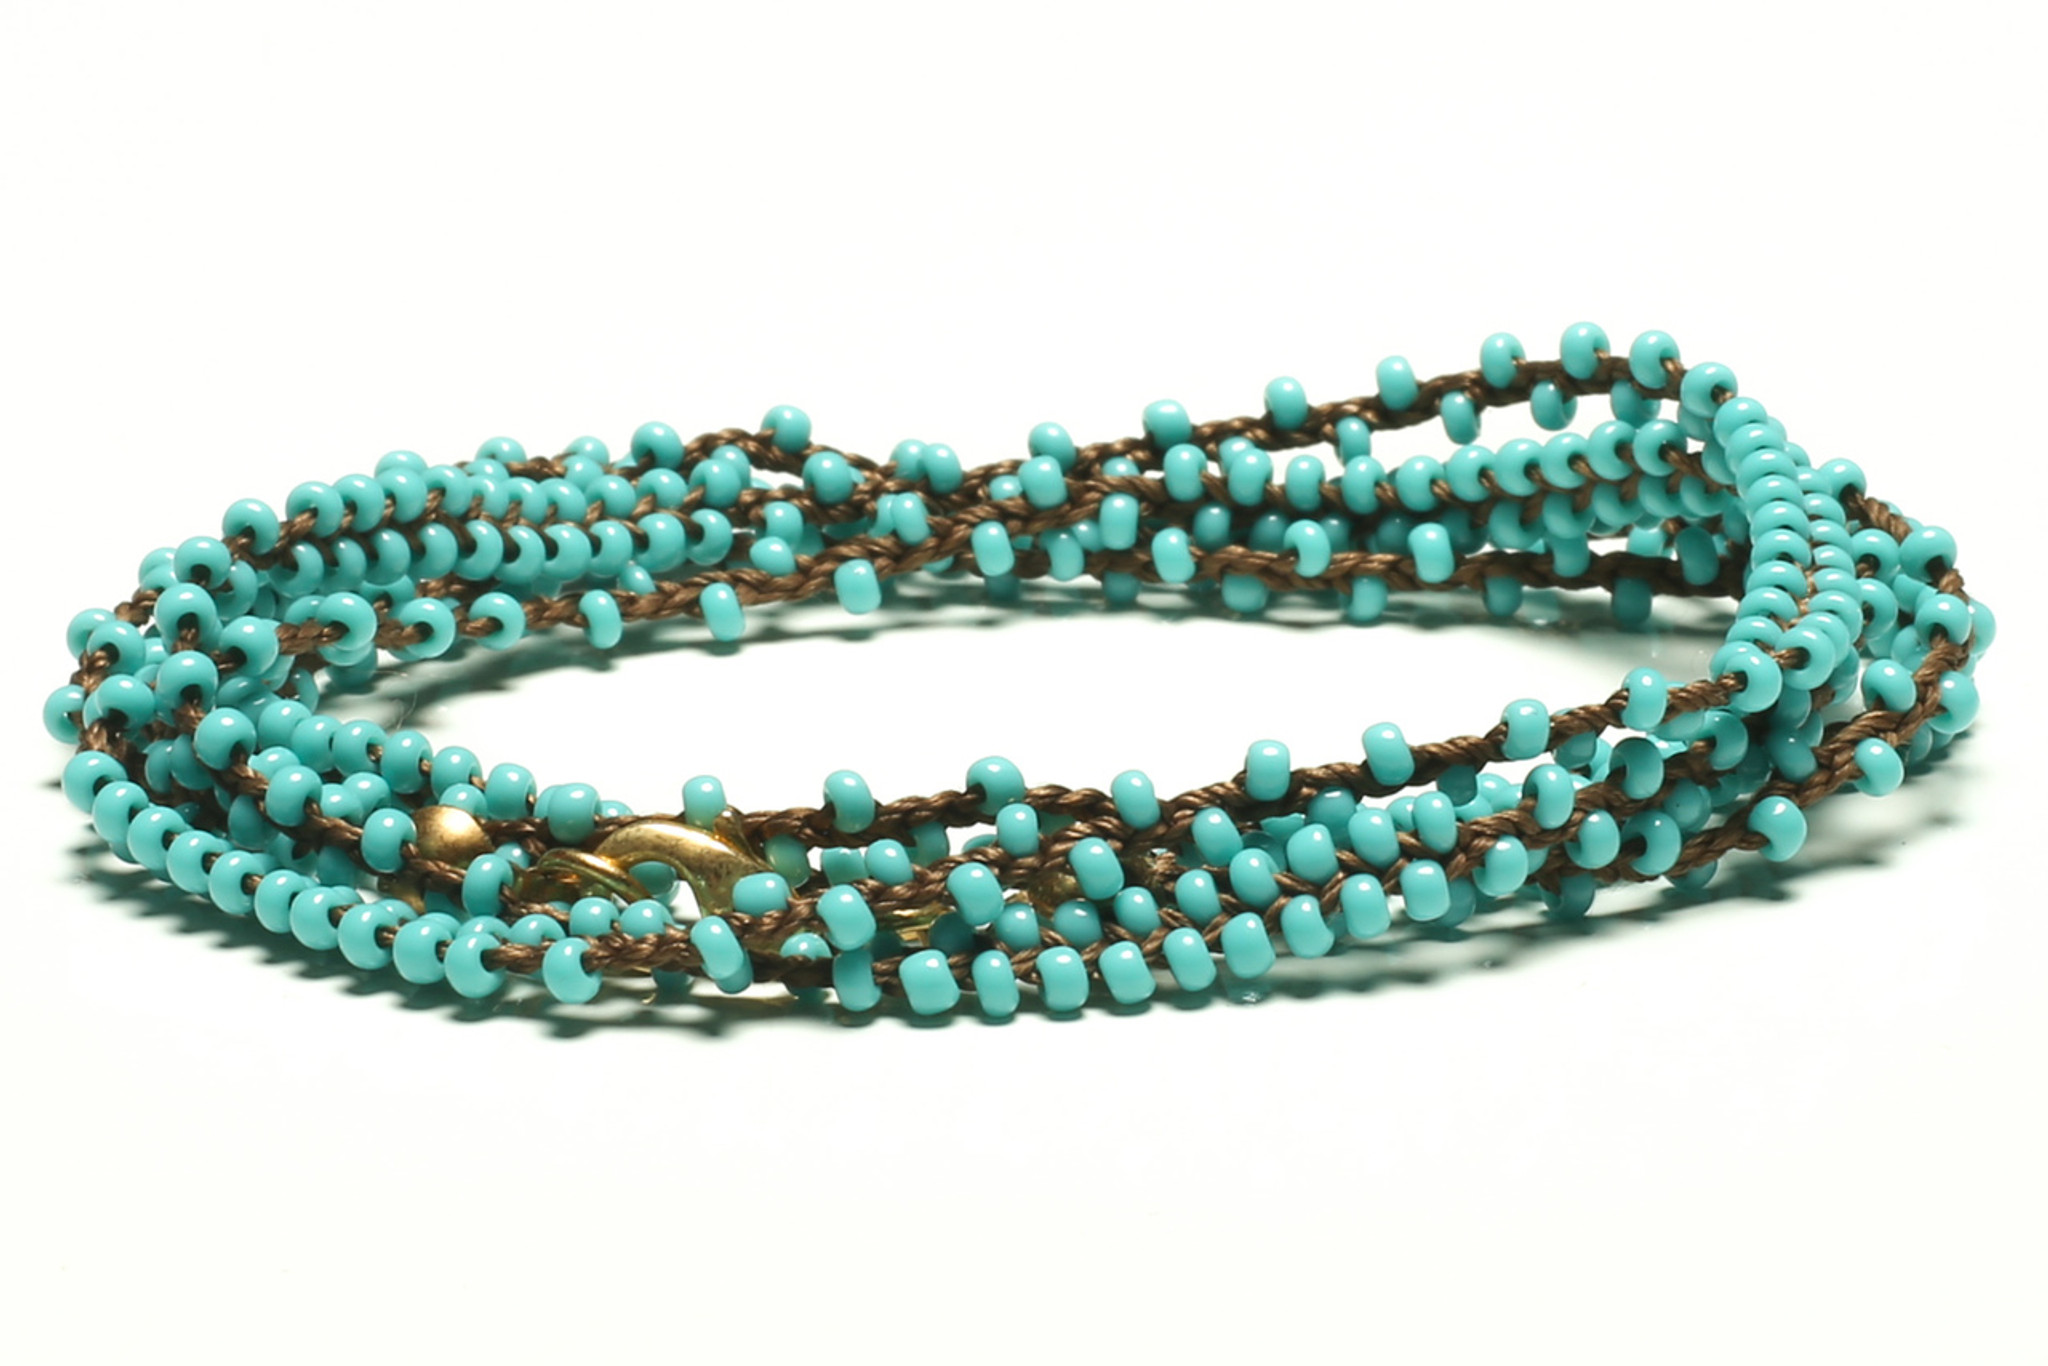 women jewelry long turquoise gear boho chic fashion choker products beads artilady layered pendant layer charm both necklace